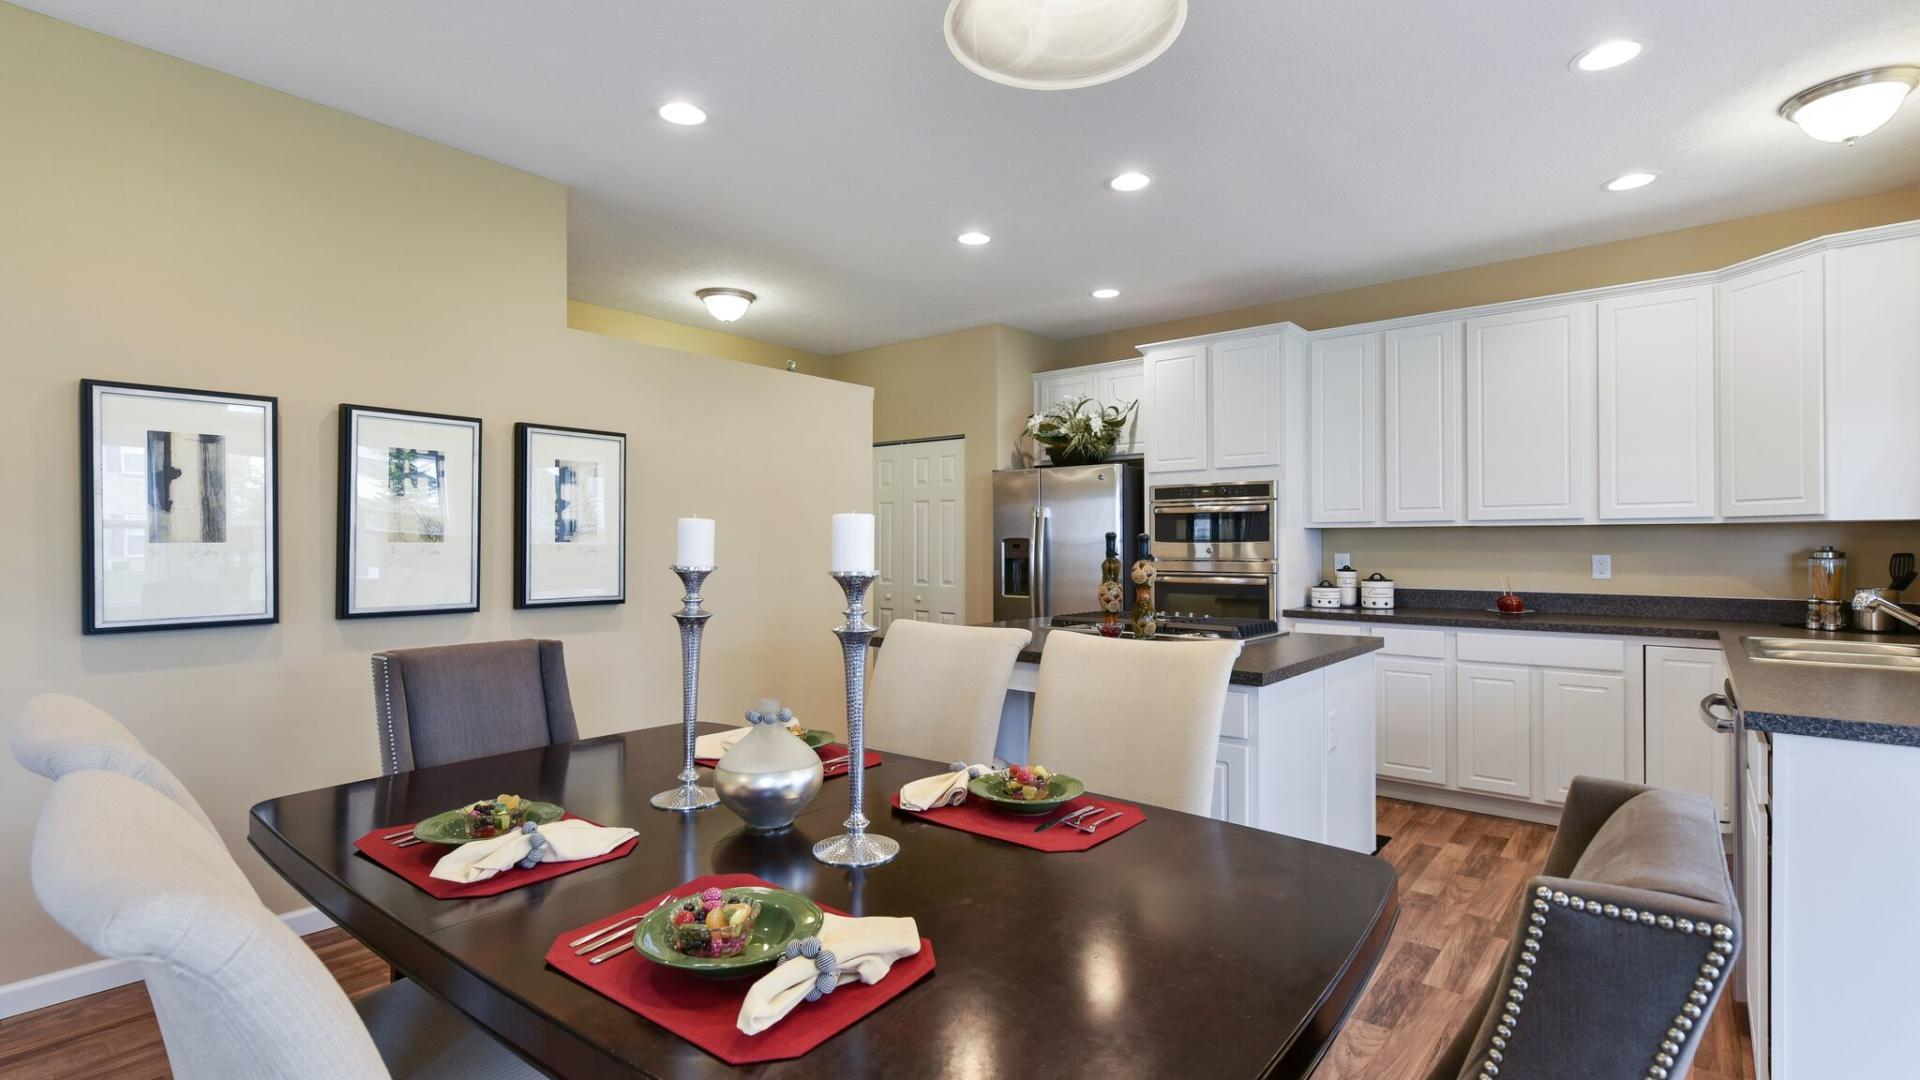 Kitchen featured in the Somerset By Maronda Homes in Cincinnati, KY